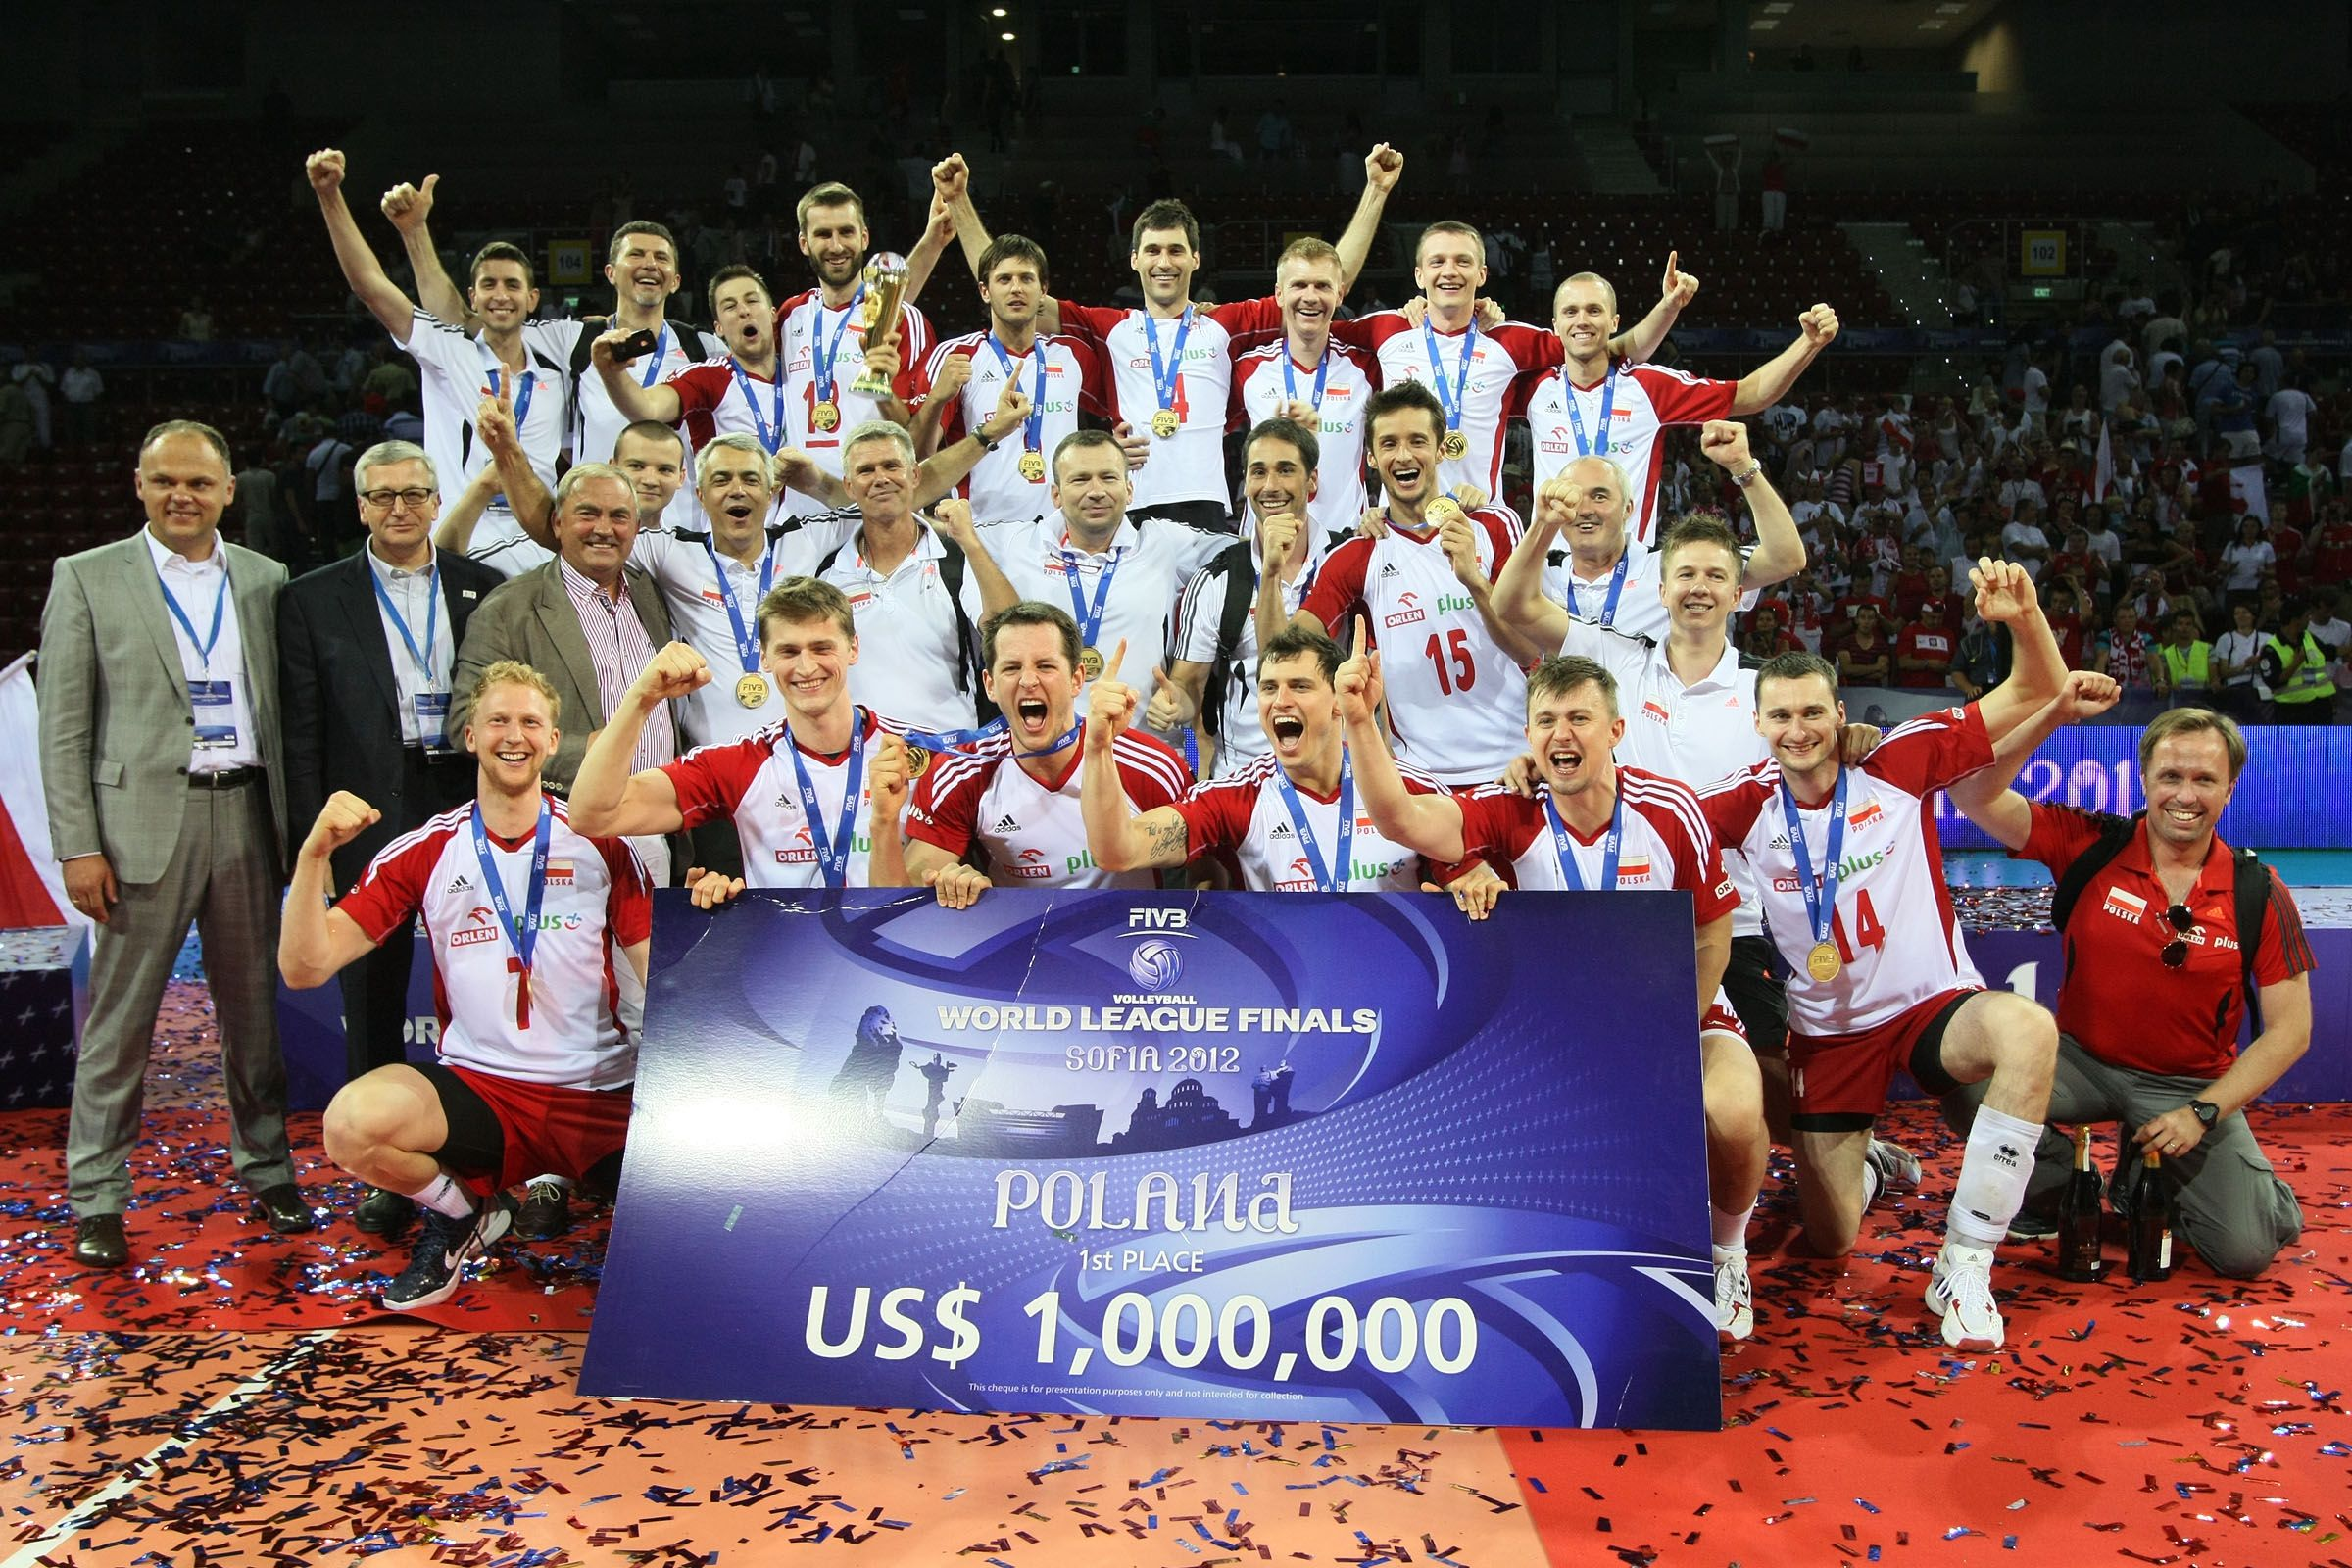 Polish National Volleyball Team The Winners Of Volleyball World League 2012 Photo Fivb Volleyball We Are The Champions Olympics Activities Olympic Medals